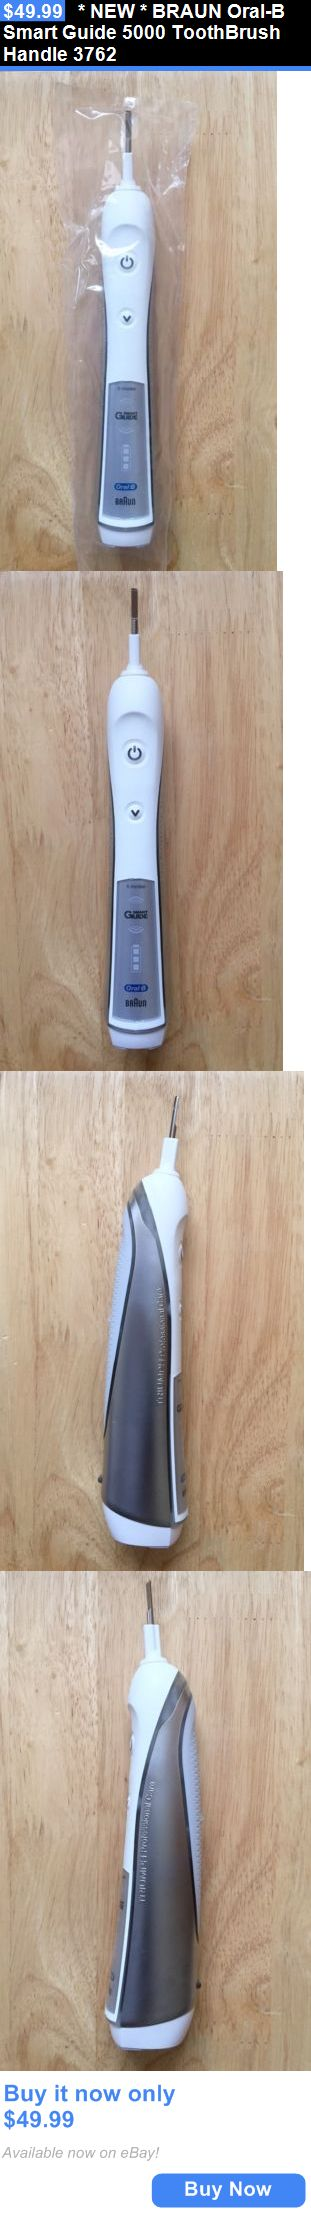 Electric Toothbrushes: * New * Braun Oral-B Smart Guide 5000 Toothbrush Handle 3762 BUY IT NOW ONLY: $49.99